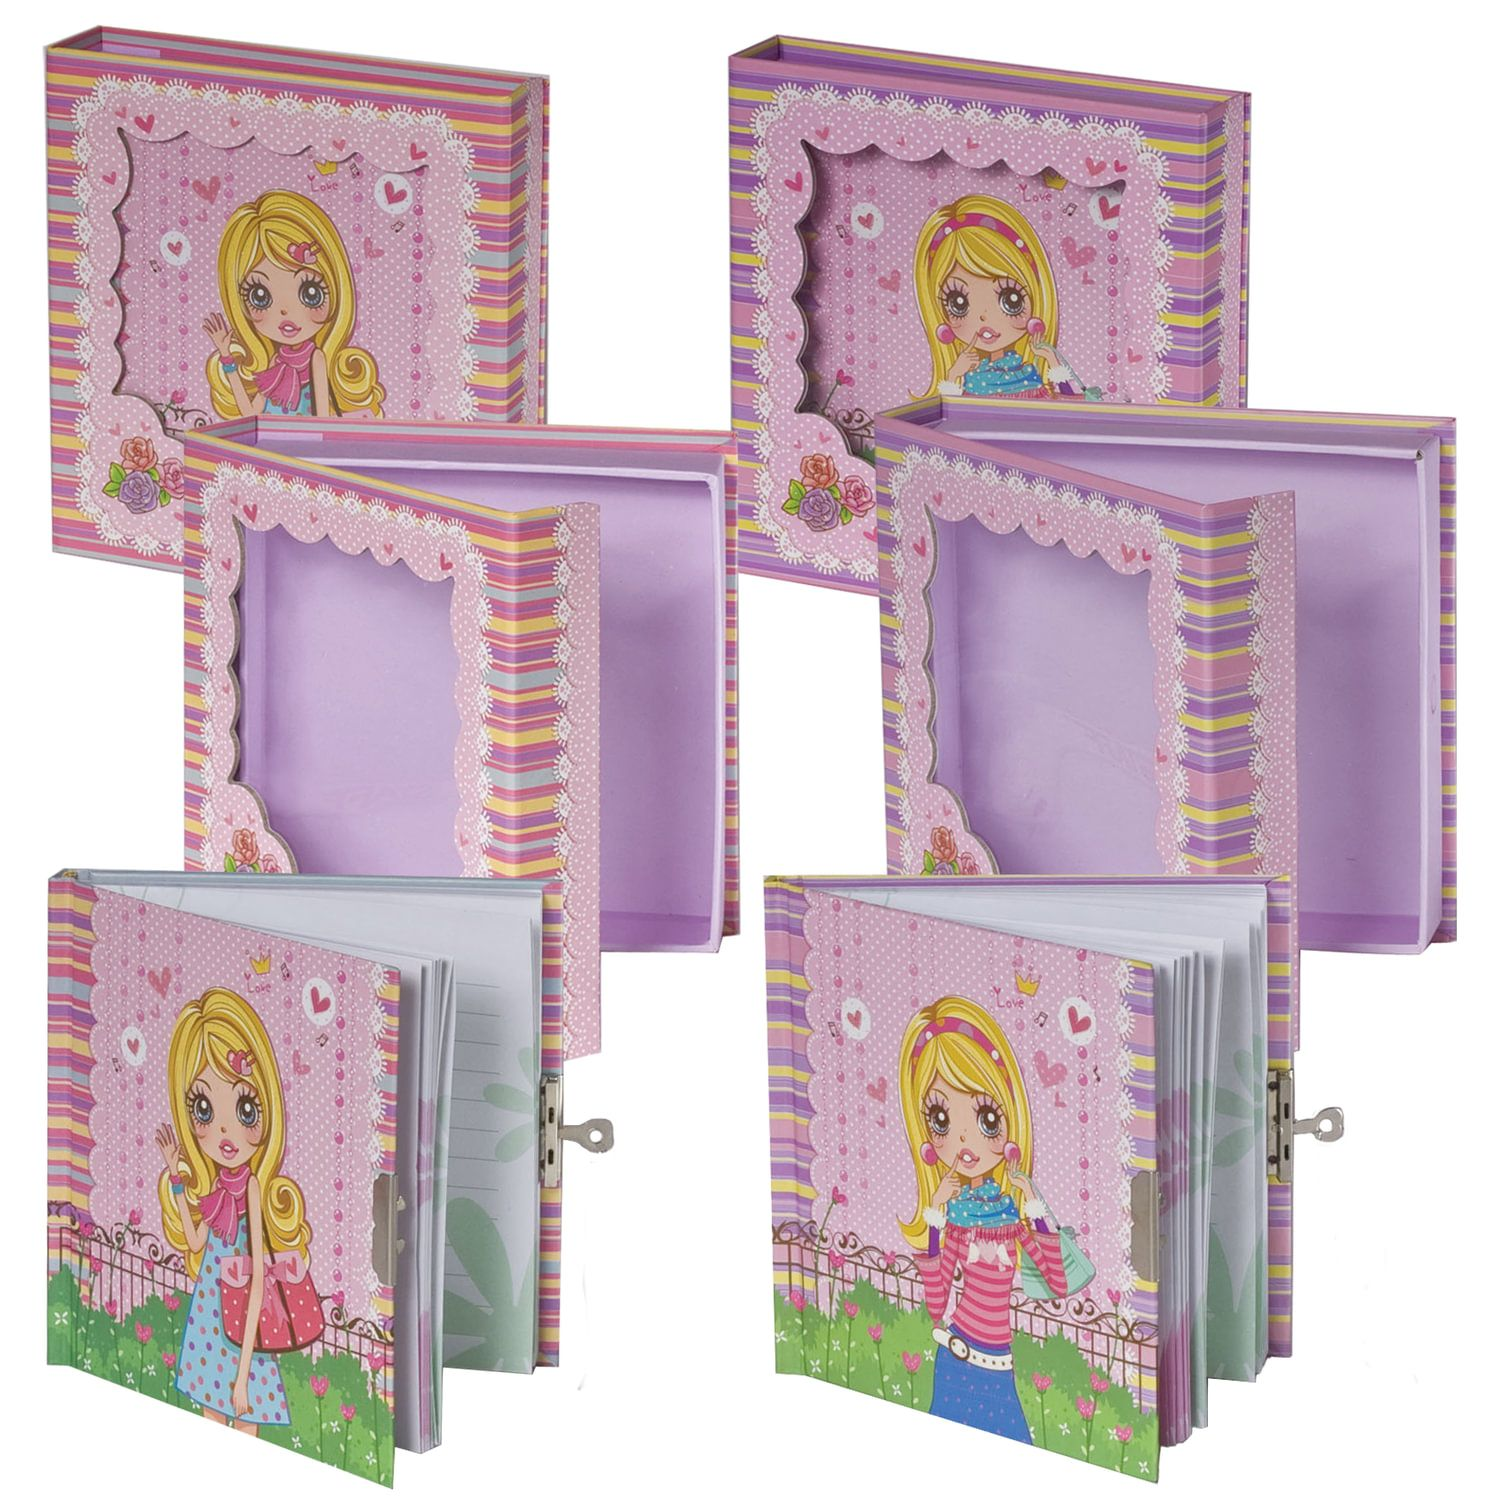 """BRAUBERG / Notebook """"Girl"""" SMALL FORMAT 60 sheets A6, 145x155 mm, hardcover, metal lock, sequins, line"""